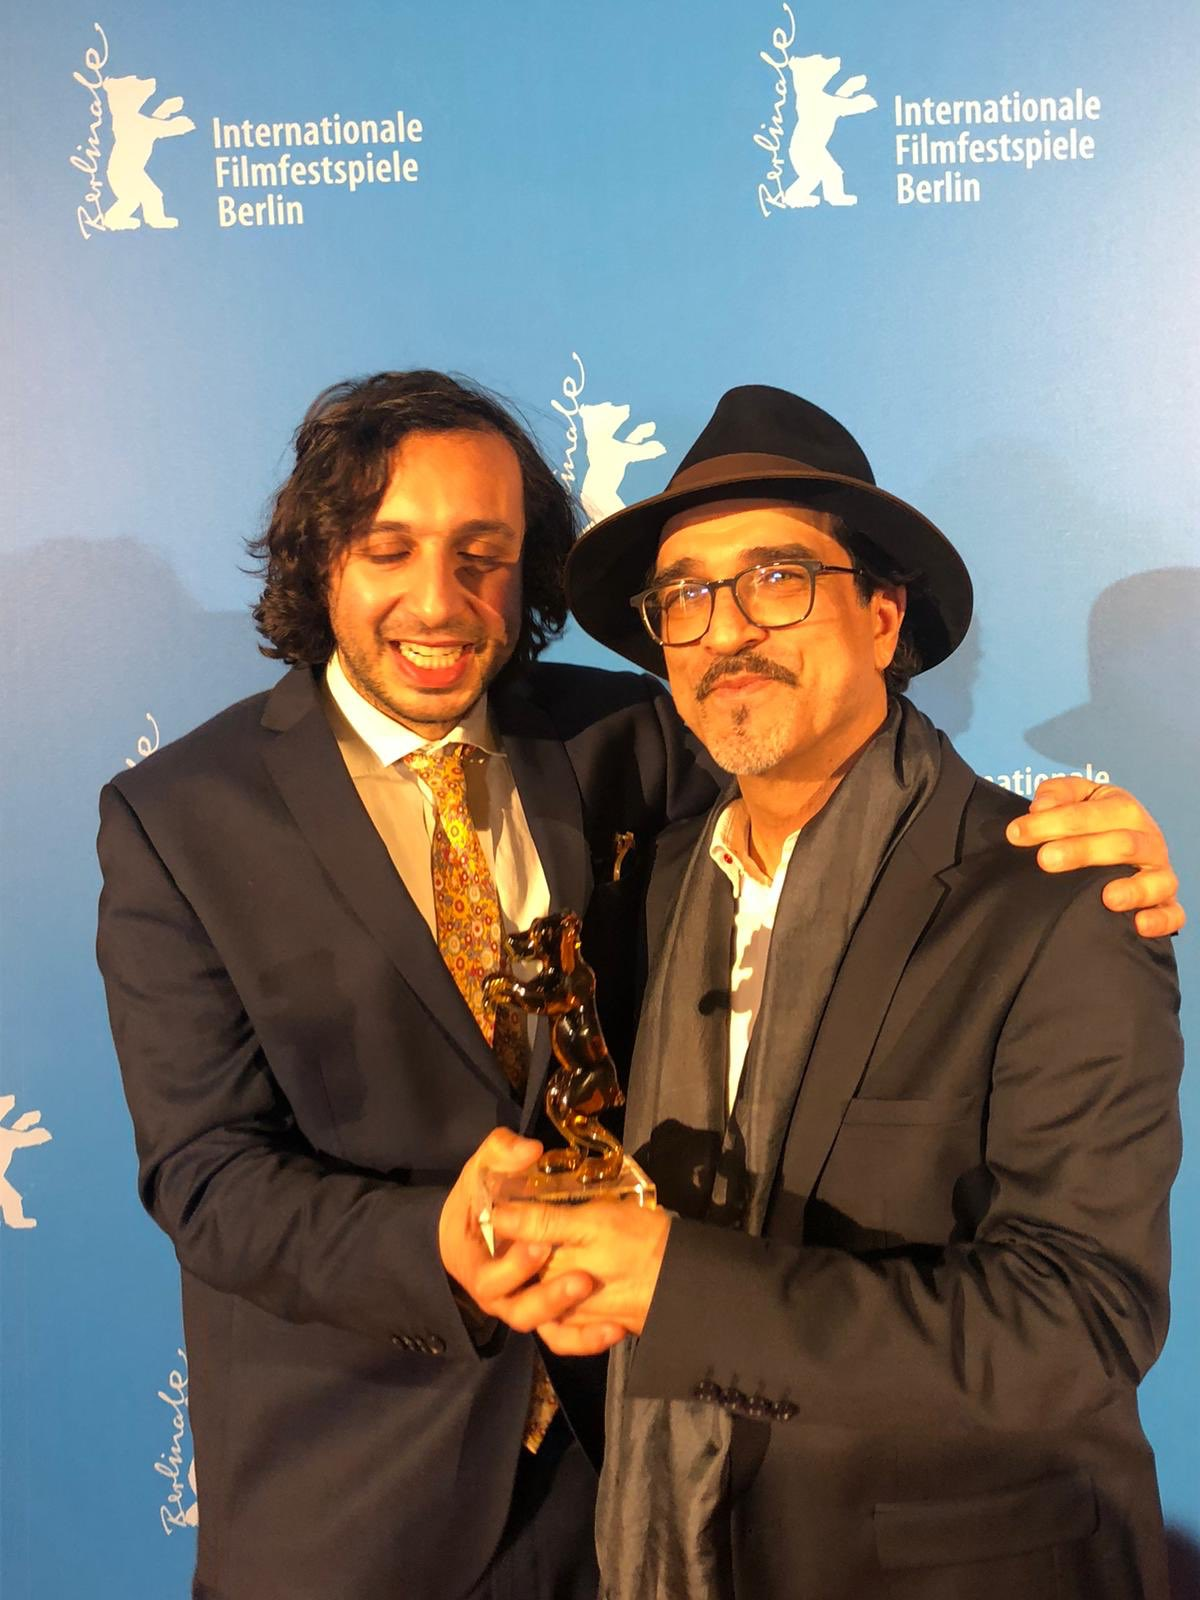 OUR LADY OF THE NILE win The Crystal Bear for the Best Film at Berlinale 2020